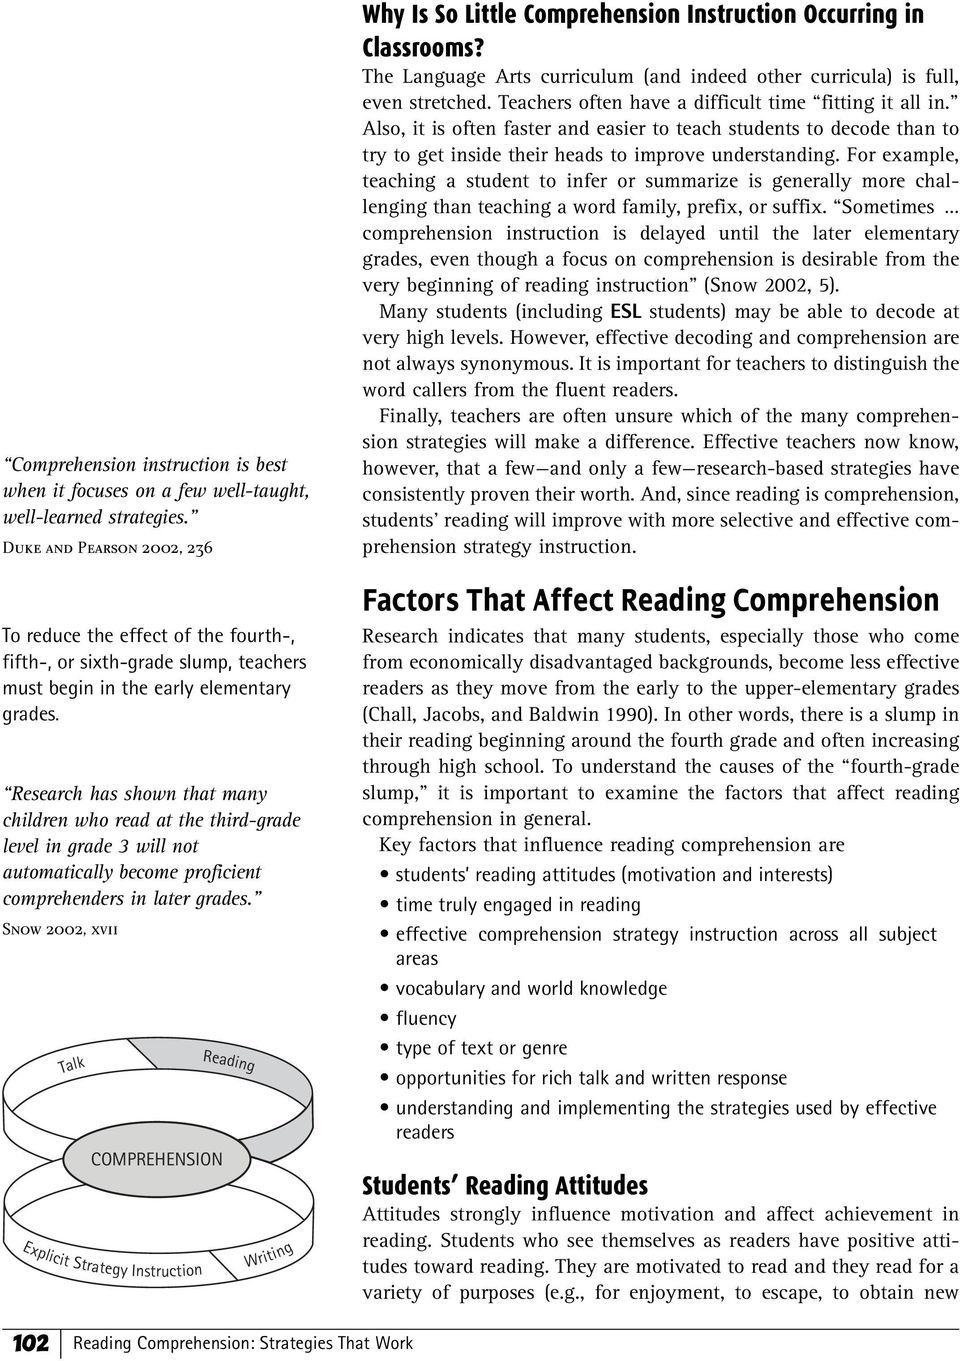 Chapter 2 Reading Comprehension Strategies That Work Pdf